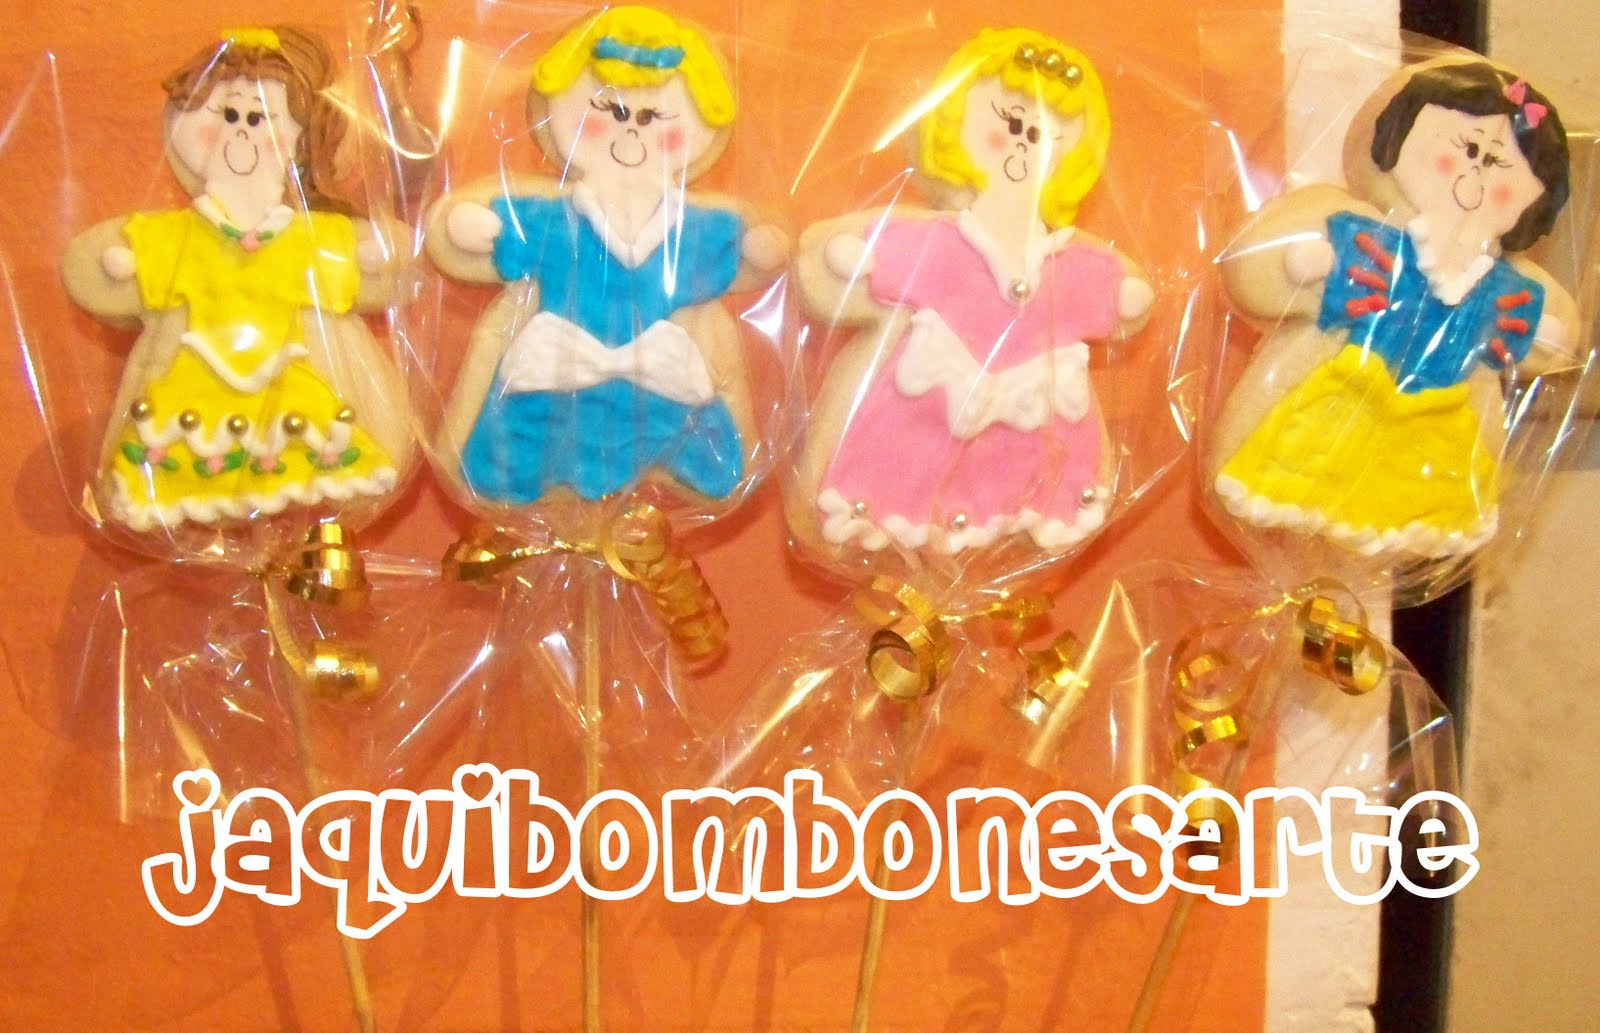 Galletas Decoradas De Princesas Jaqui Bombonesarte Galletas Decoradas De Las Princesas